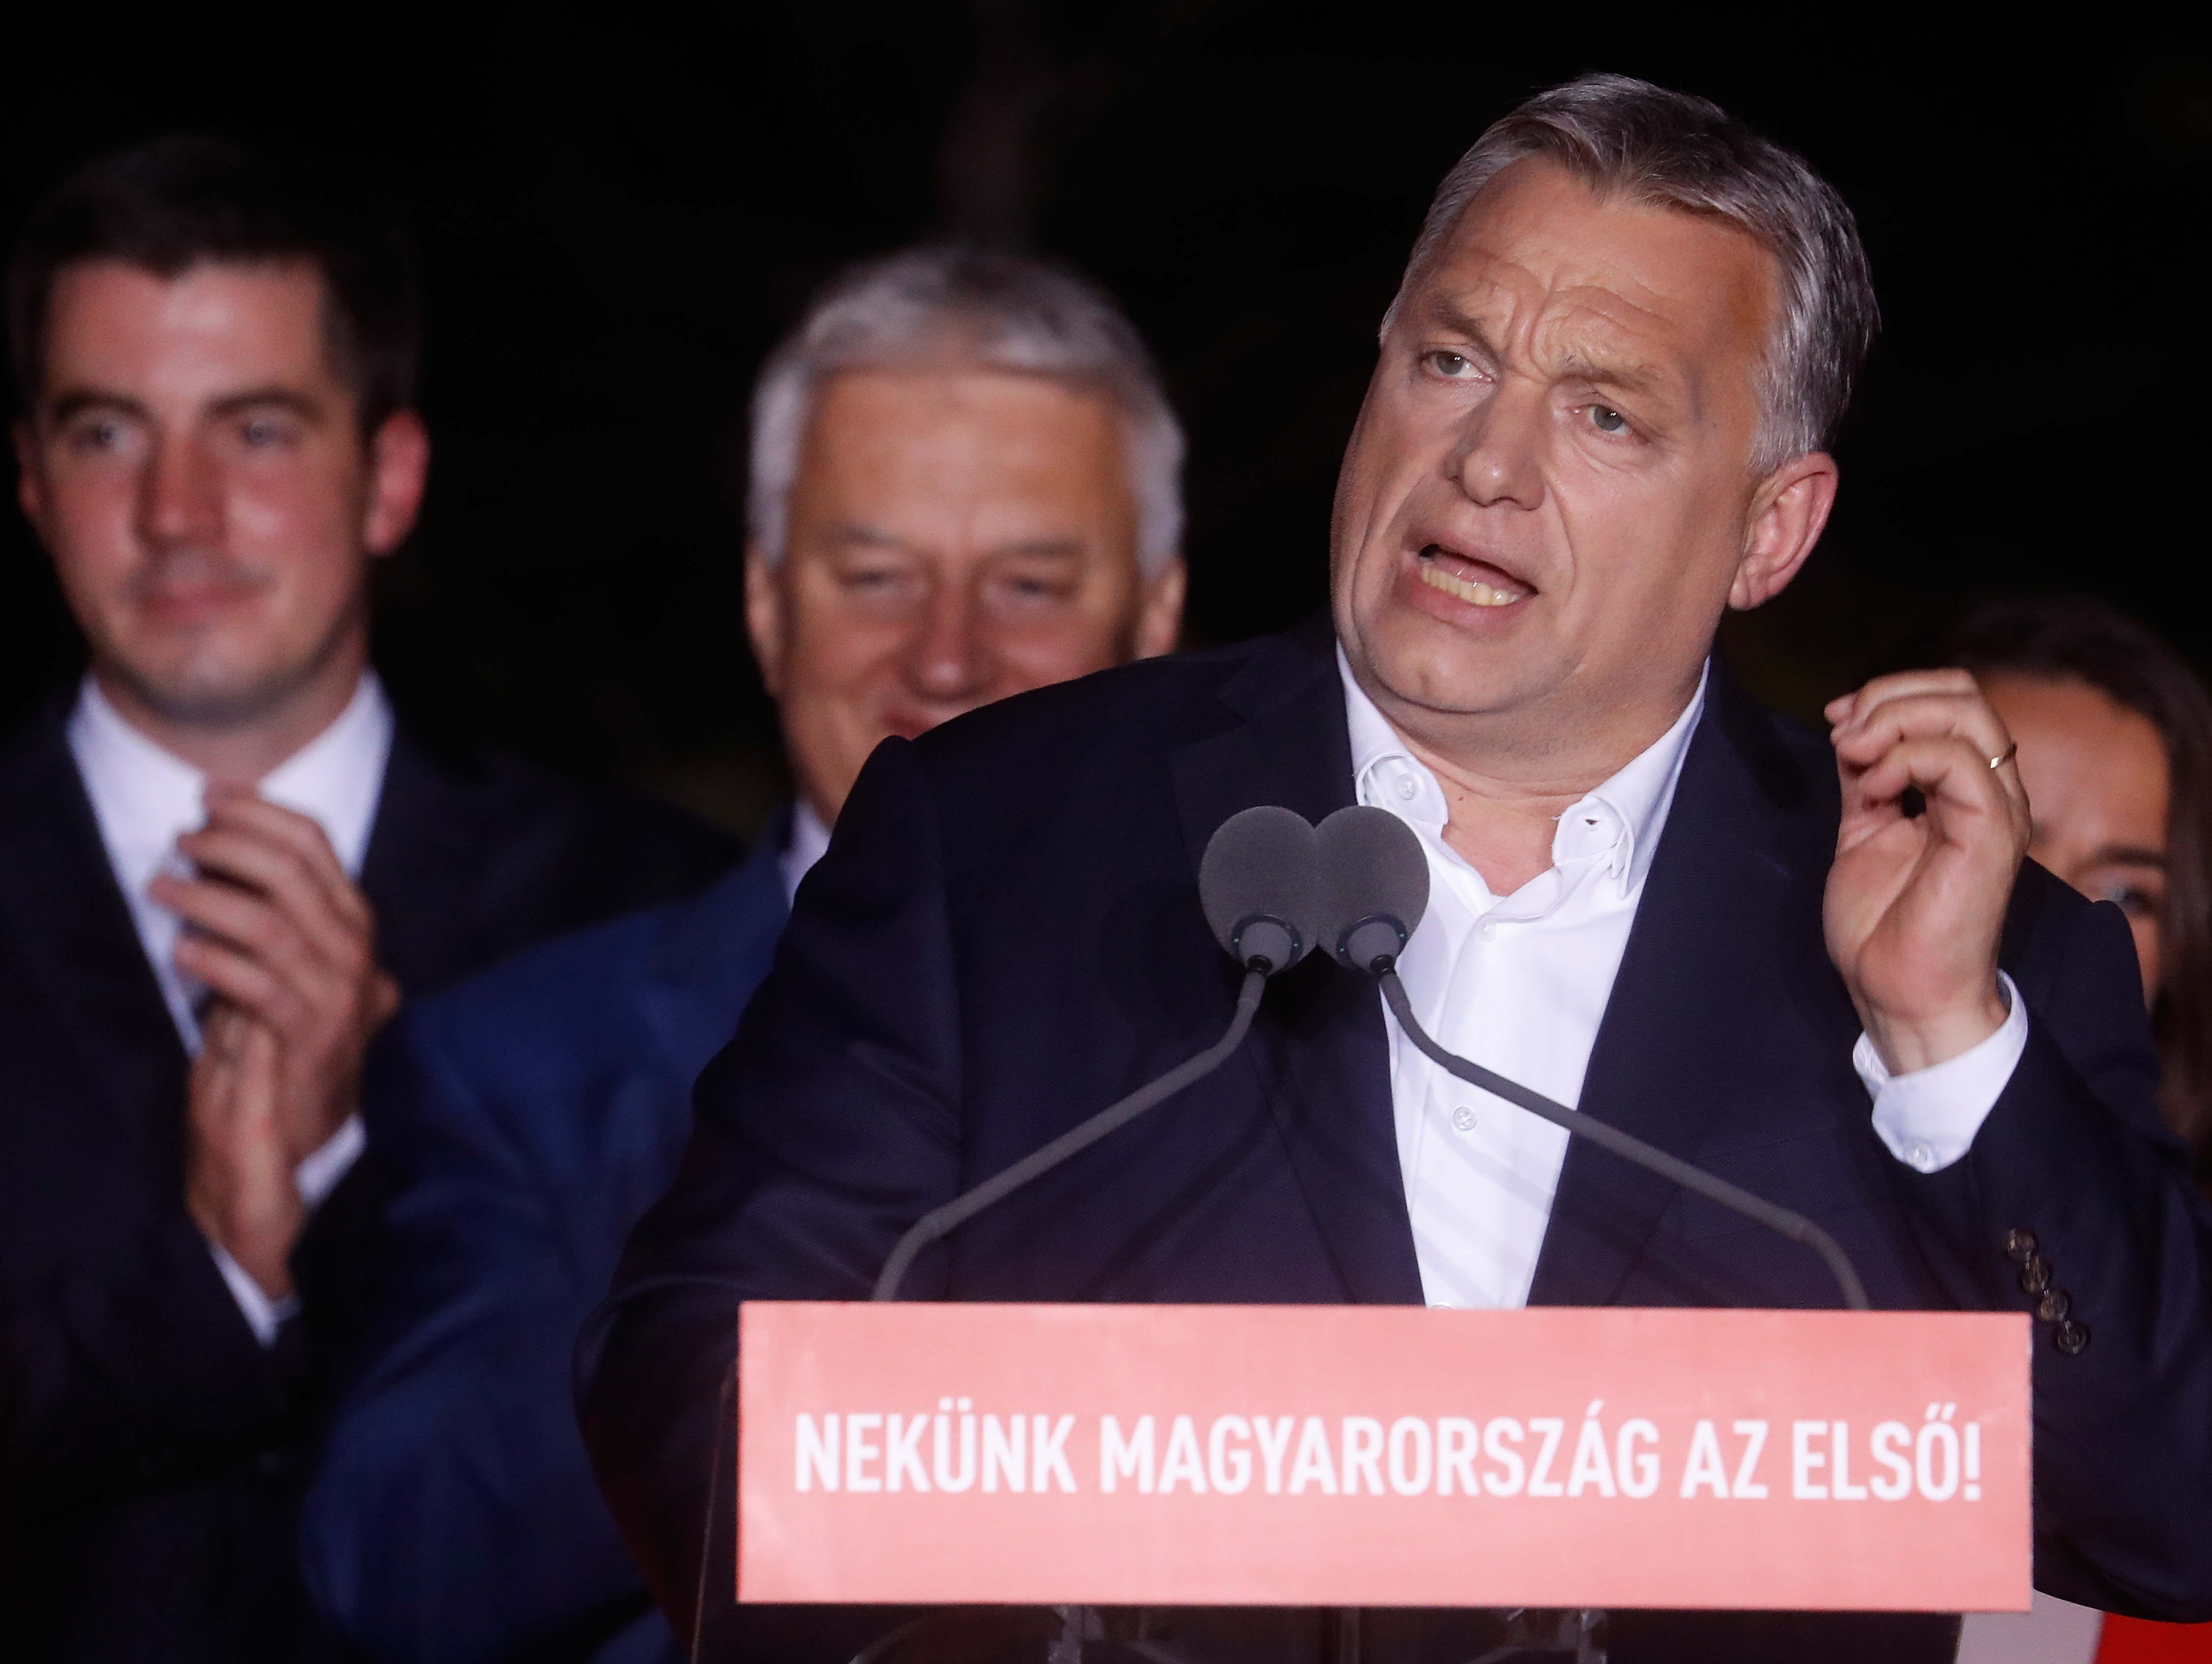 Hungarian Prime Minister Viktor Orban addresses supporters on May 26.